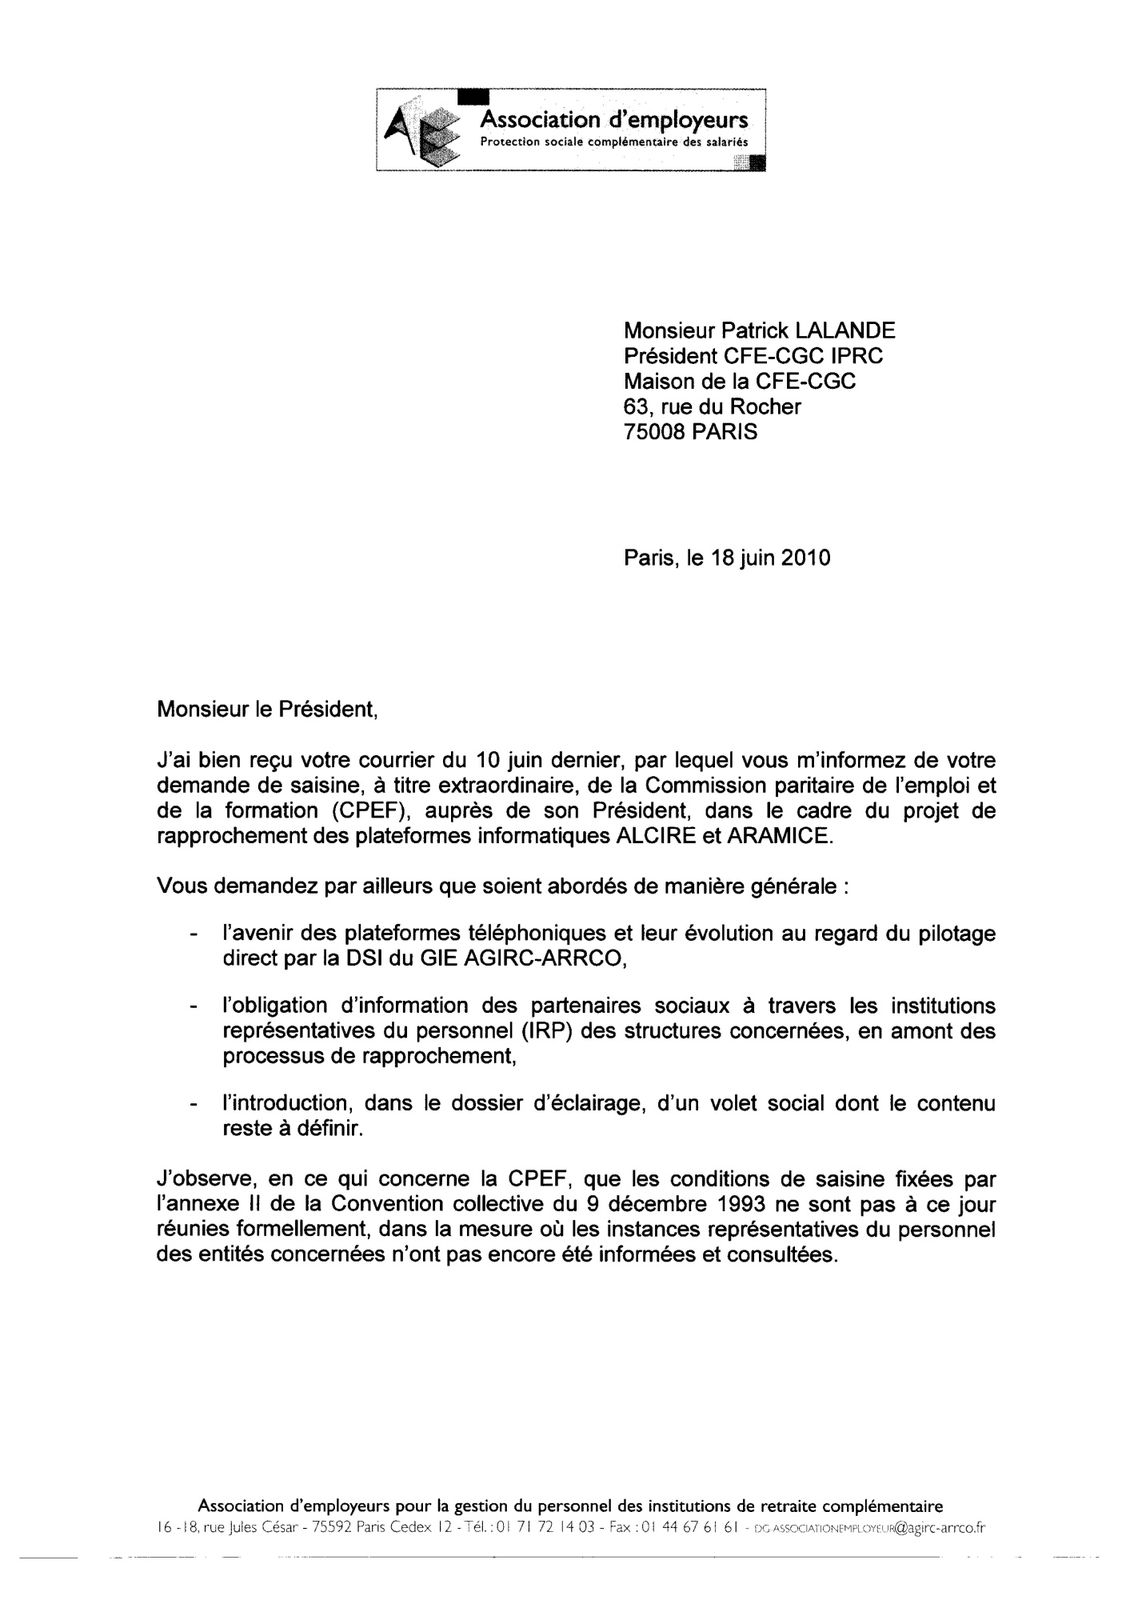 application letter sample  exemple de lettre de motivation usine agroalimentaire